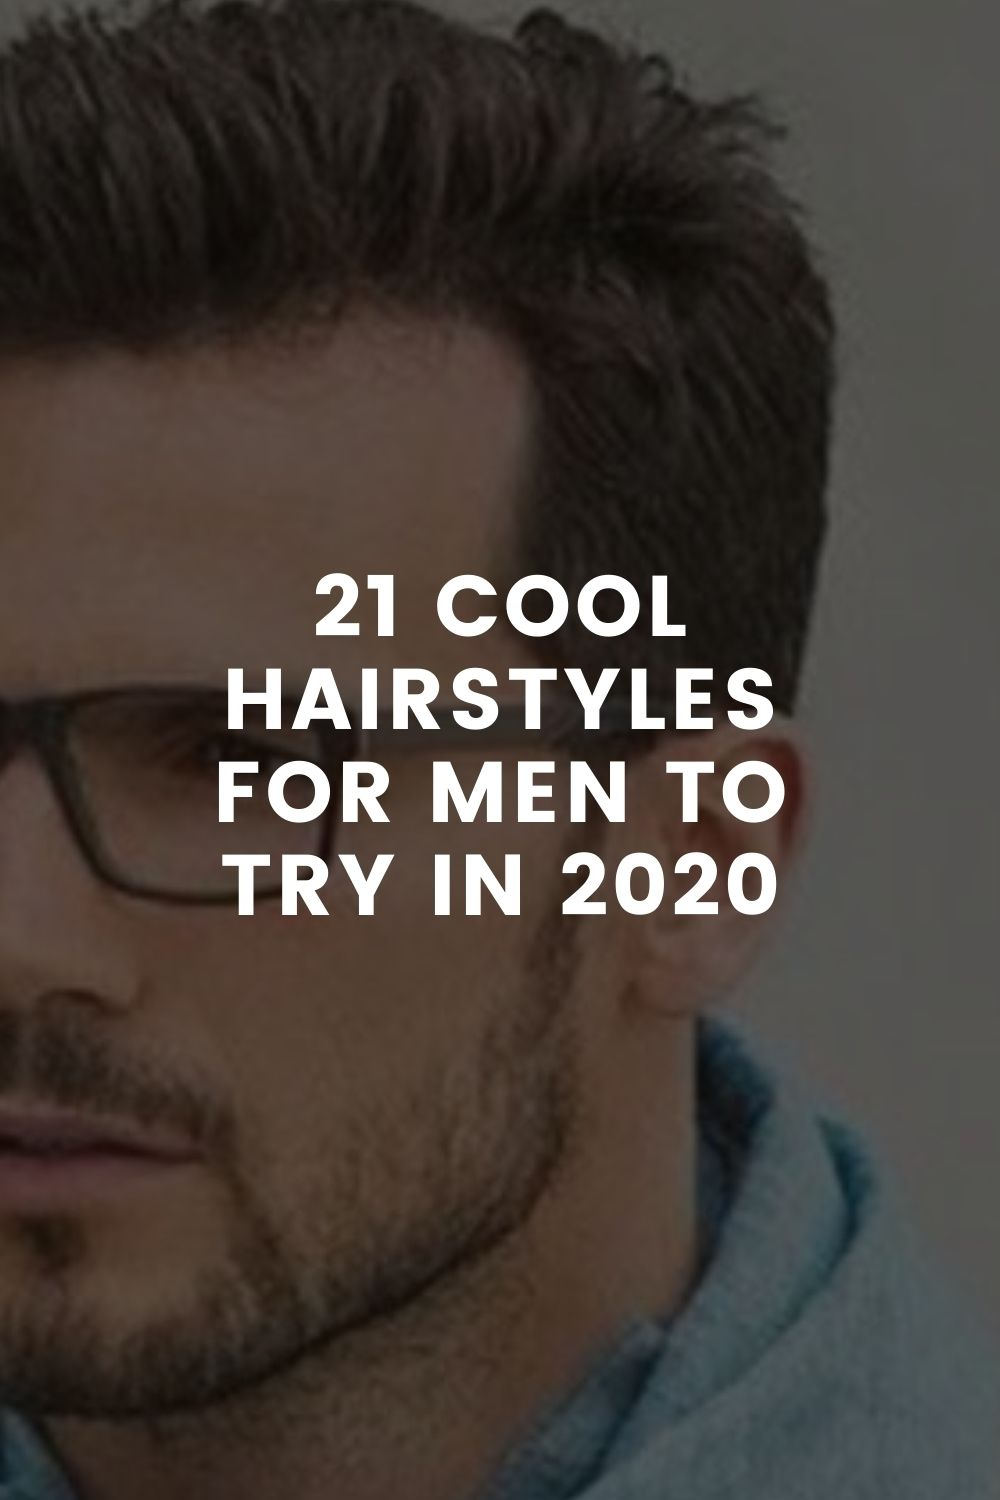 21 Cool Hairstyles For Men To Try In 2020